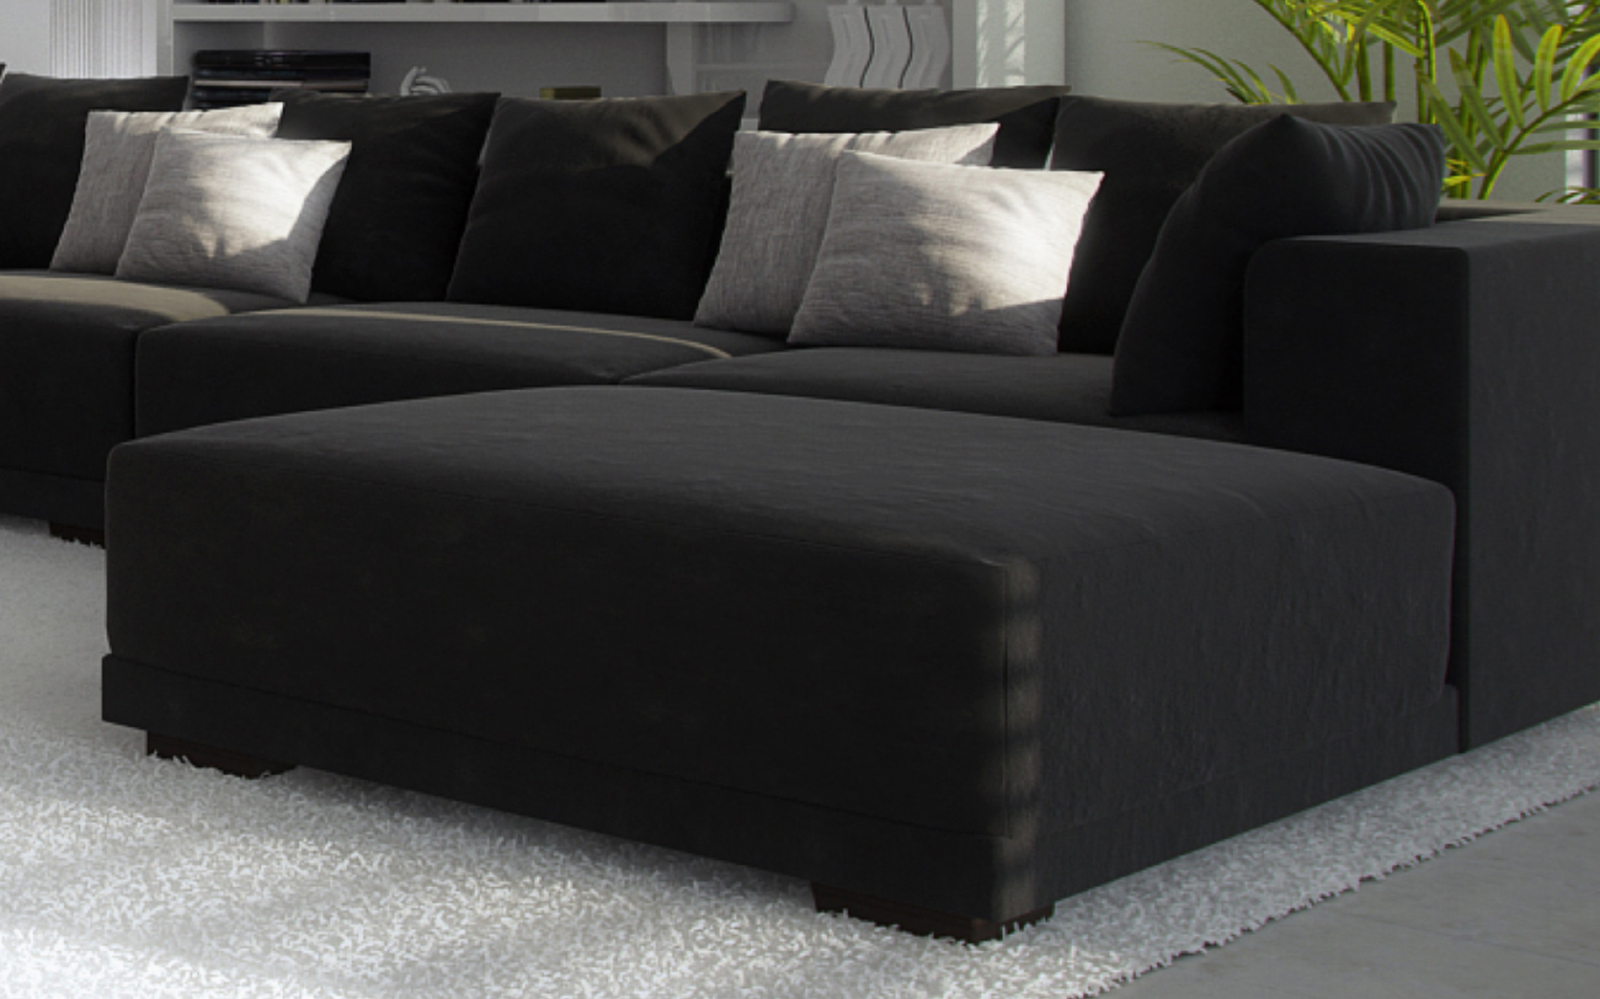 sale wohnzimmer hocker passend zur couch anima schwarz. Black Bedroom Furniture Sets. Home Design Ideas